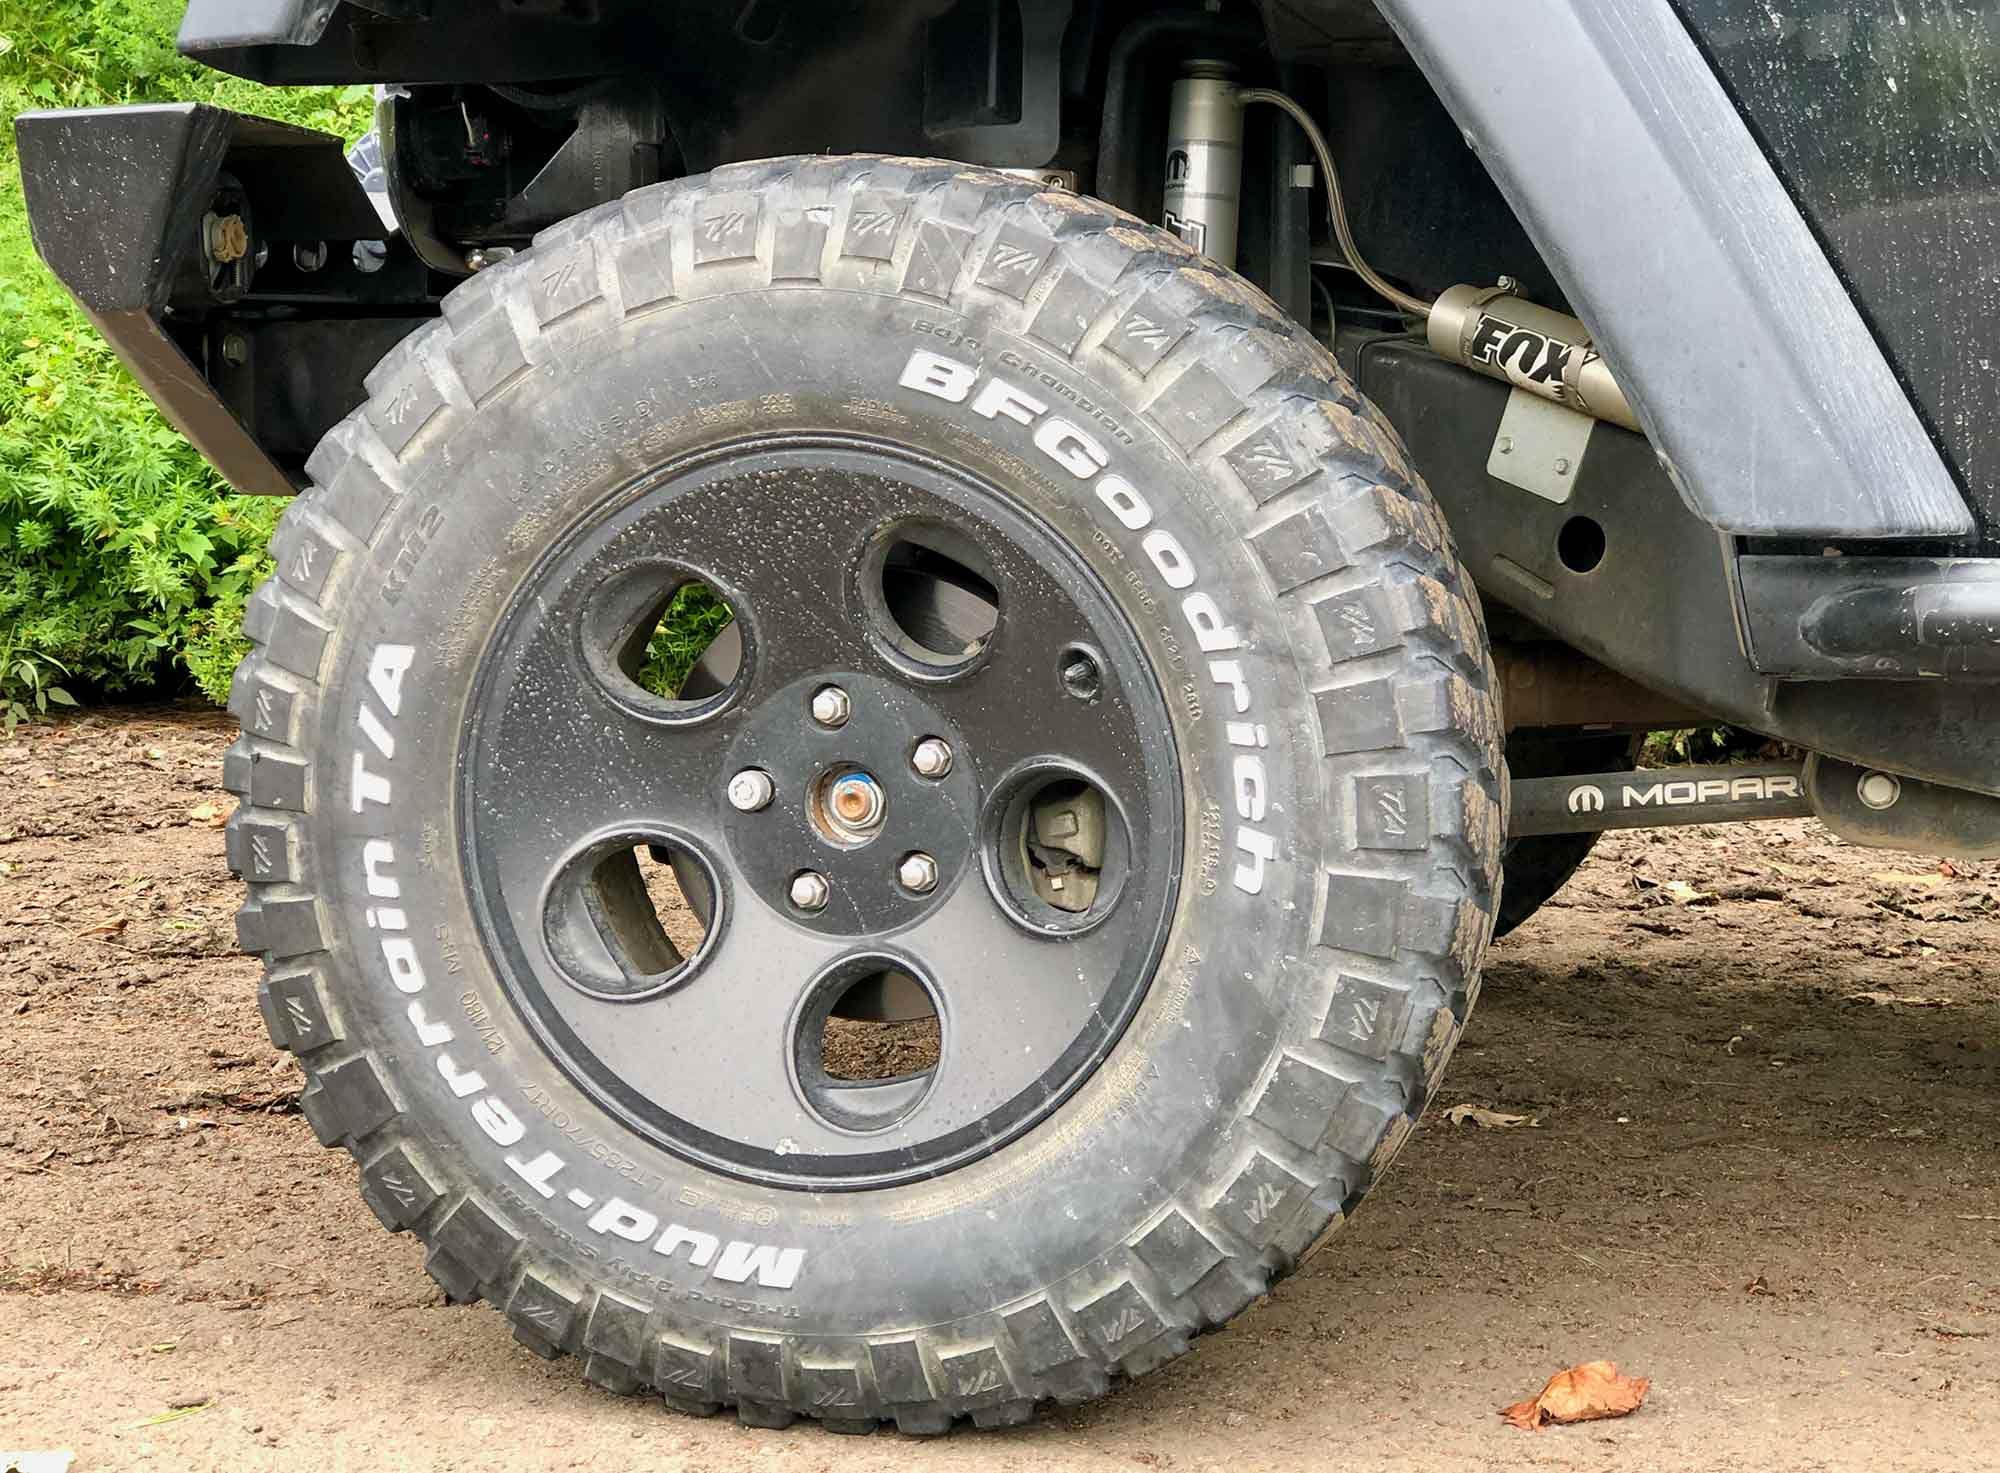 With tires just under 33 inches tall and Fox suspension, our Jeep is set up similar to some UTVs.